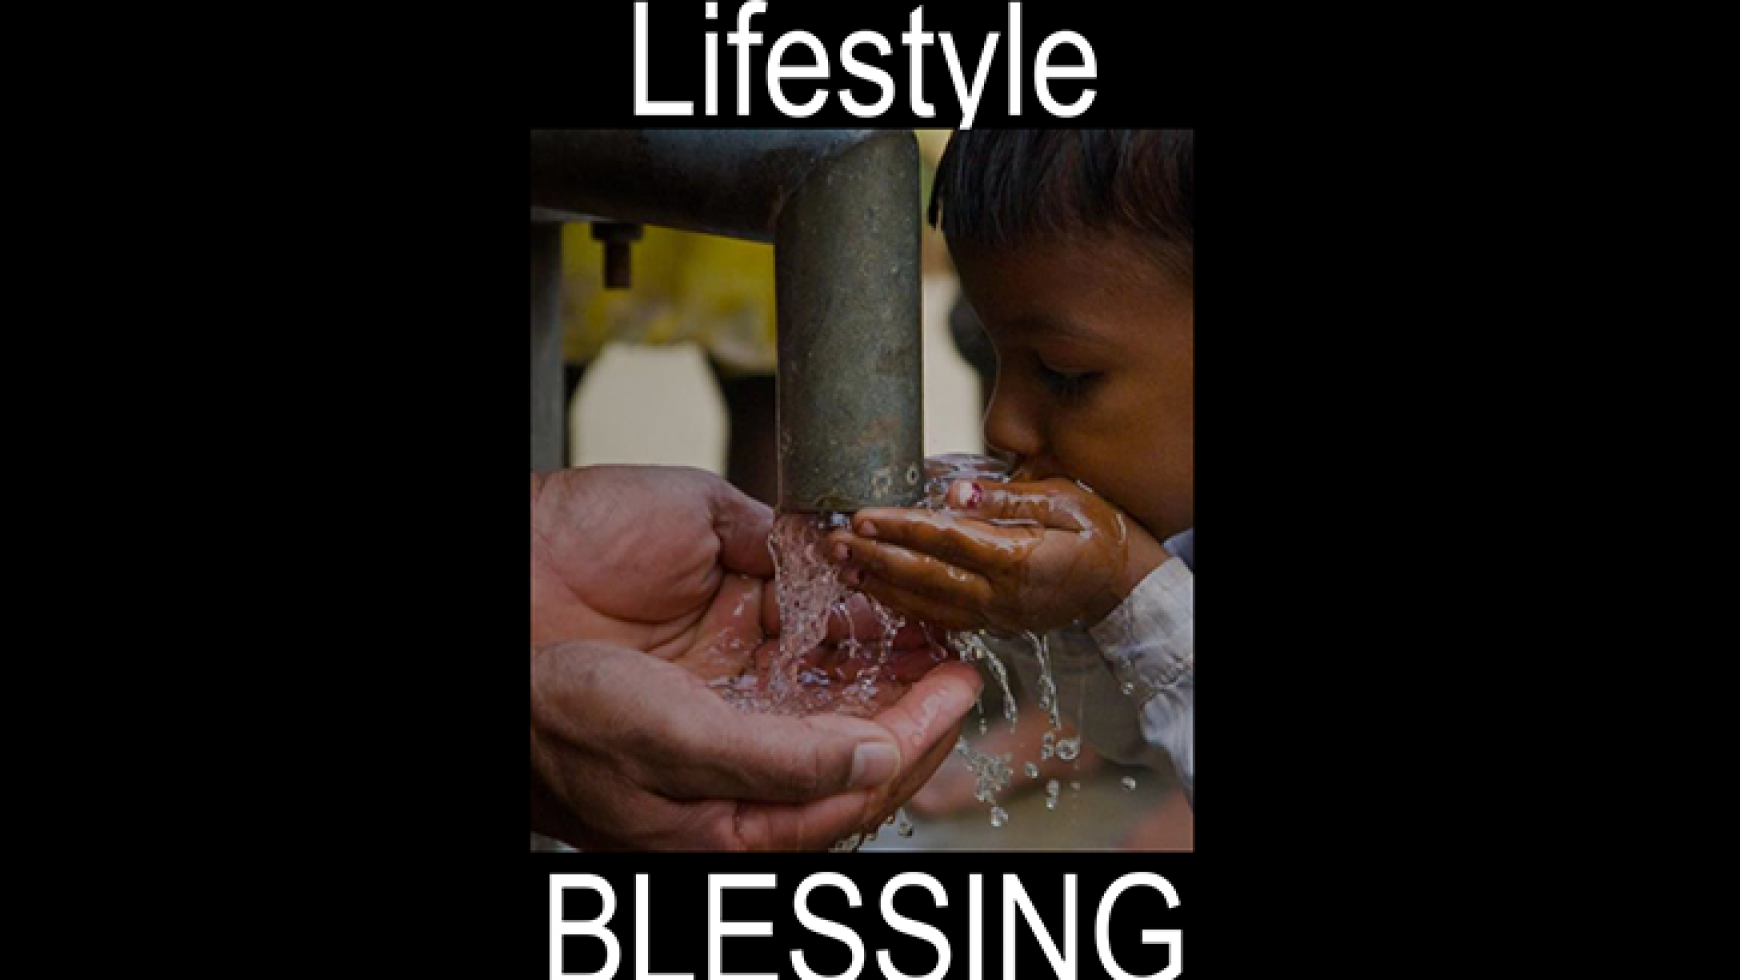 Lifestyle of Blessing